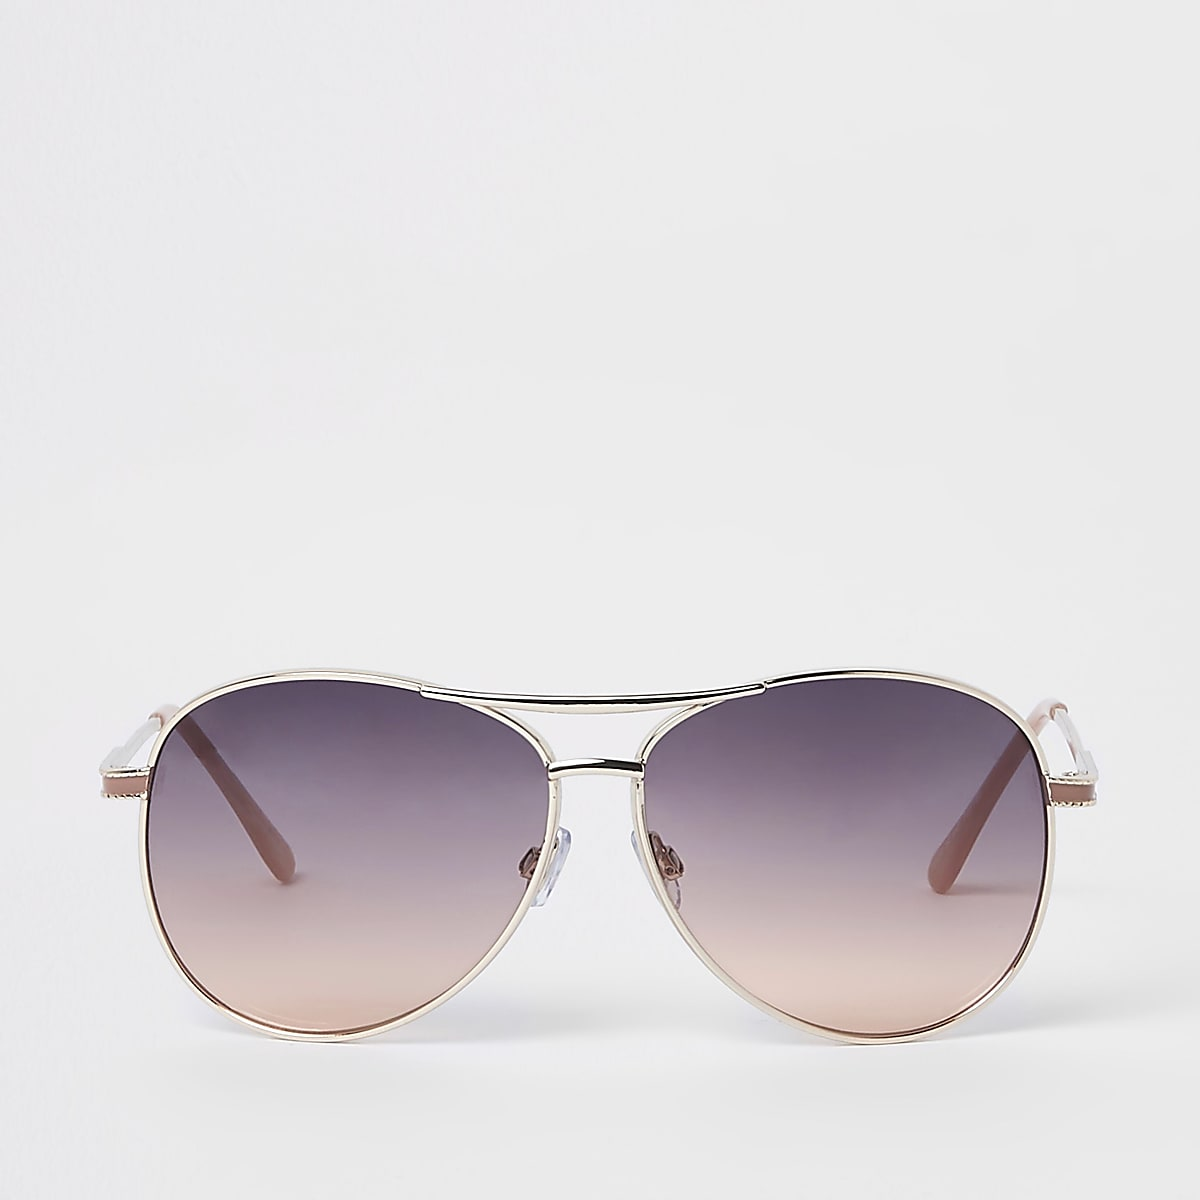 Gold tone smoke lens aviator sunglasses